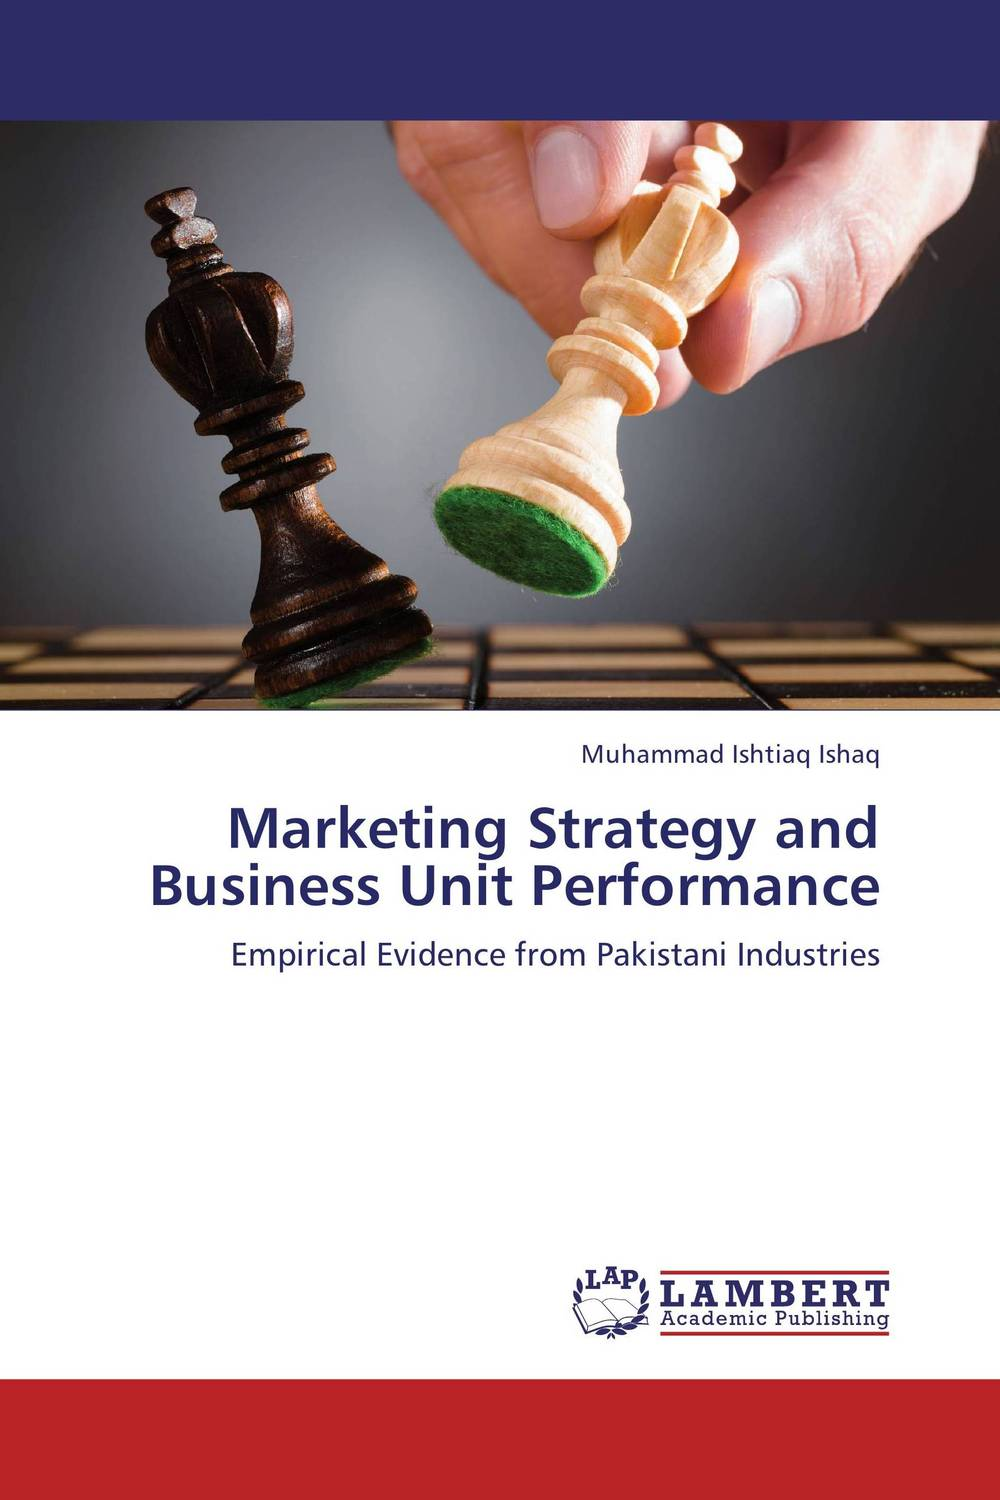 Marketing Strategy and Business Unit Performance prospects of citrus producers and marketing in pakistani california